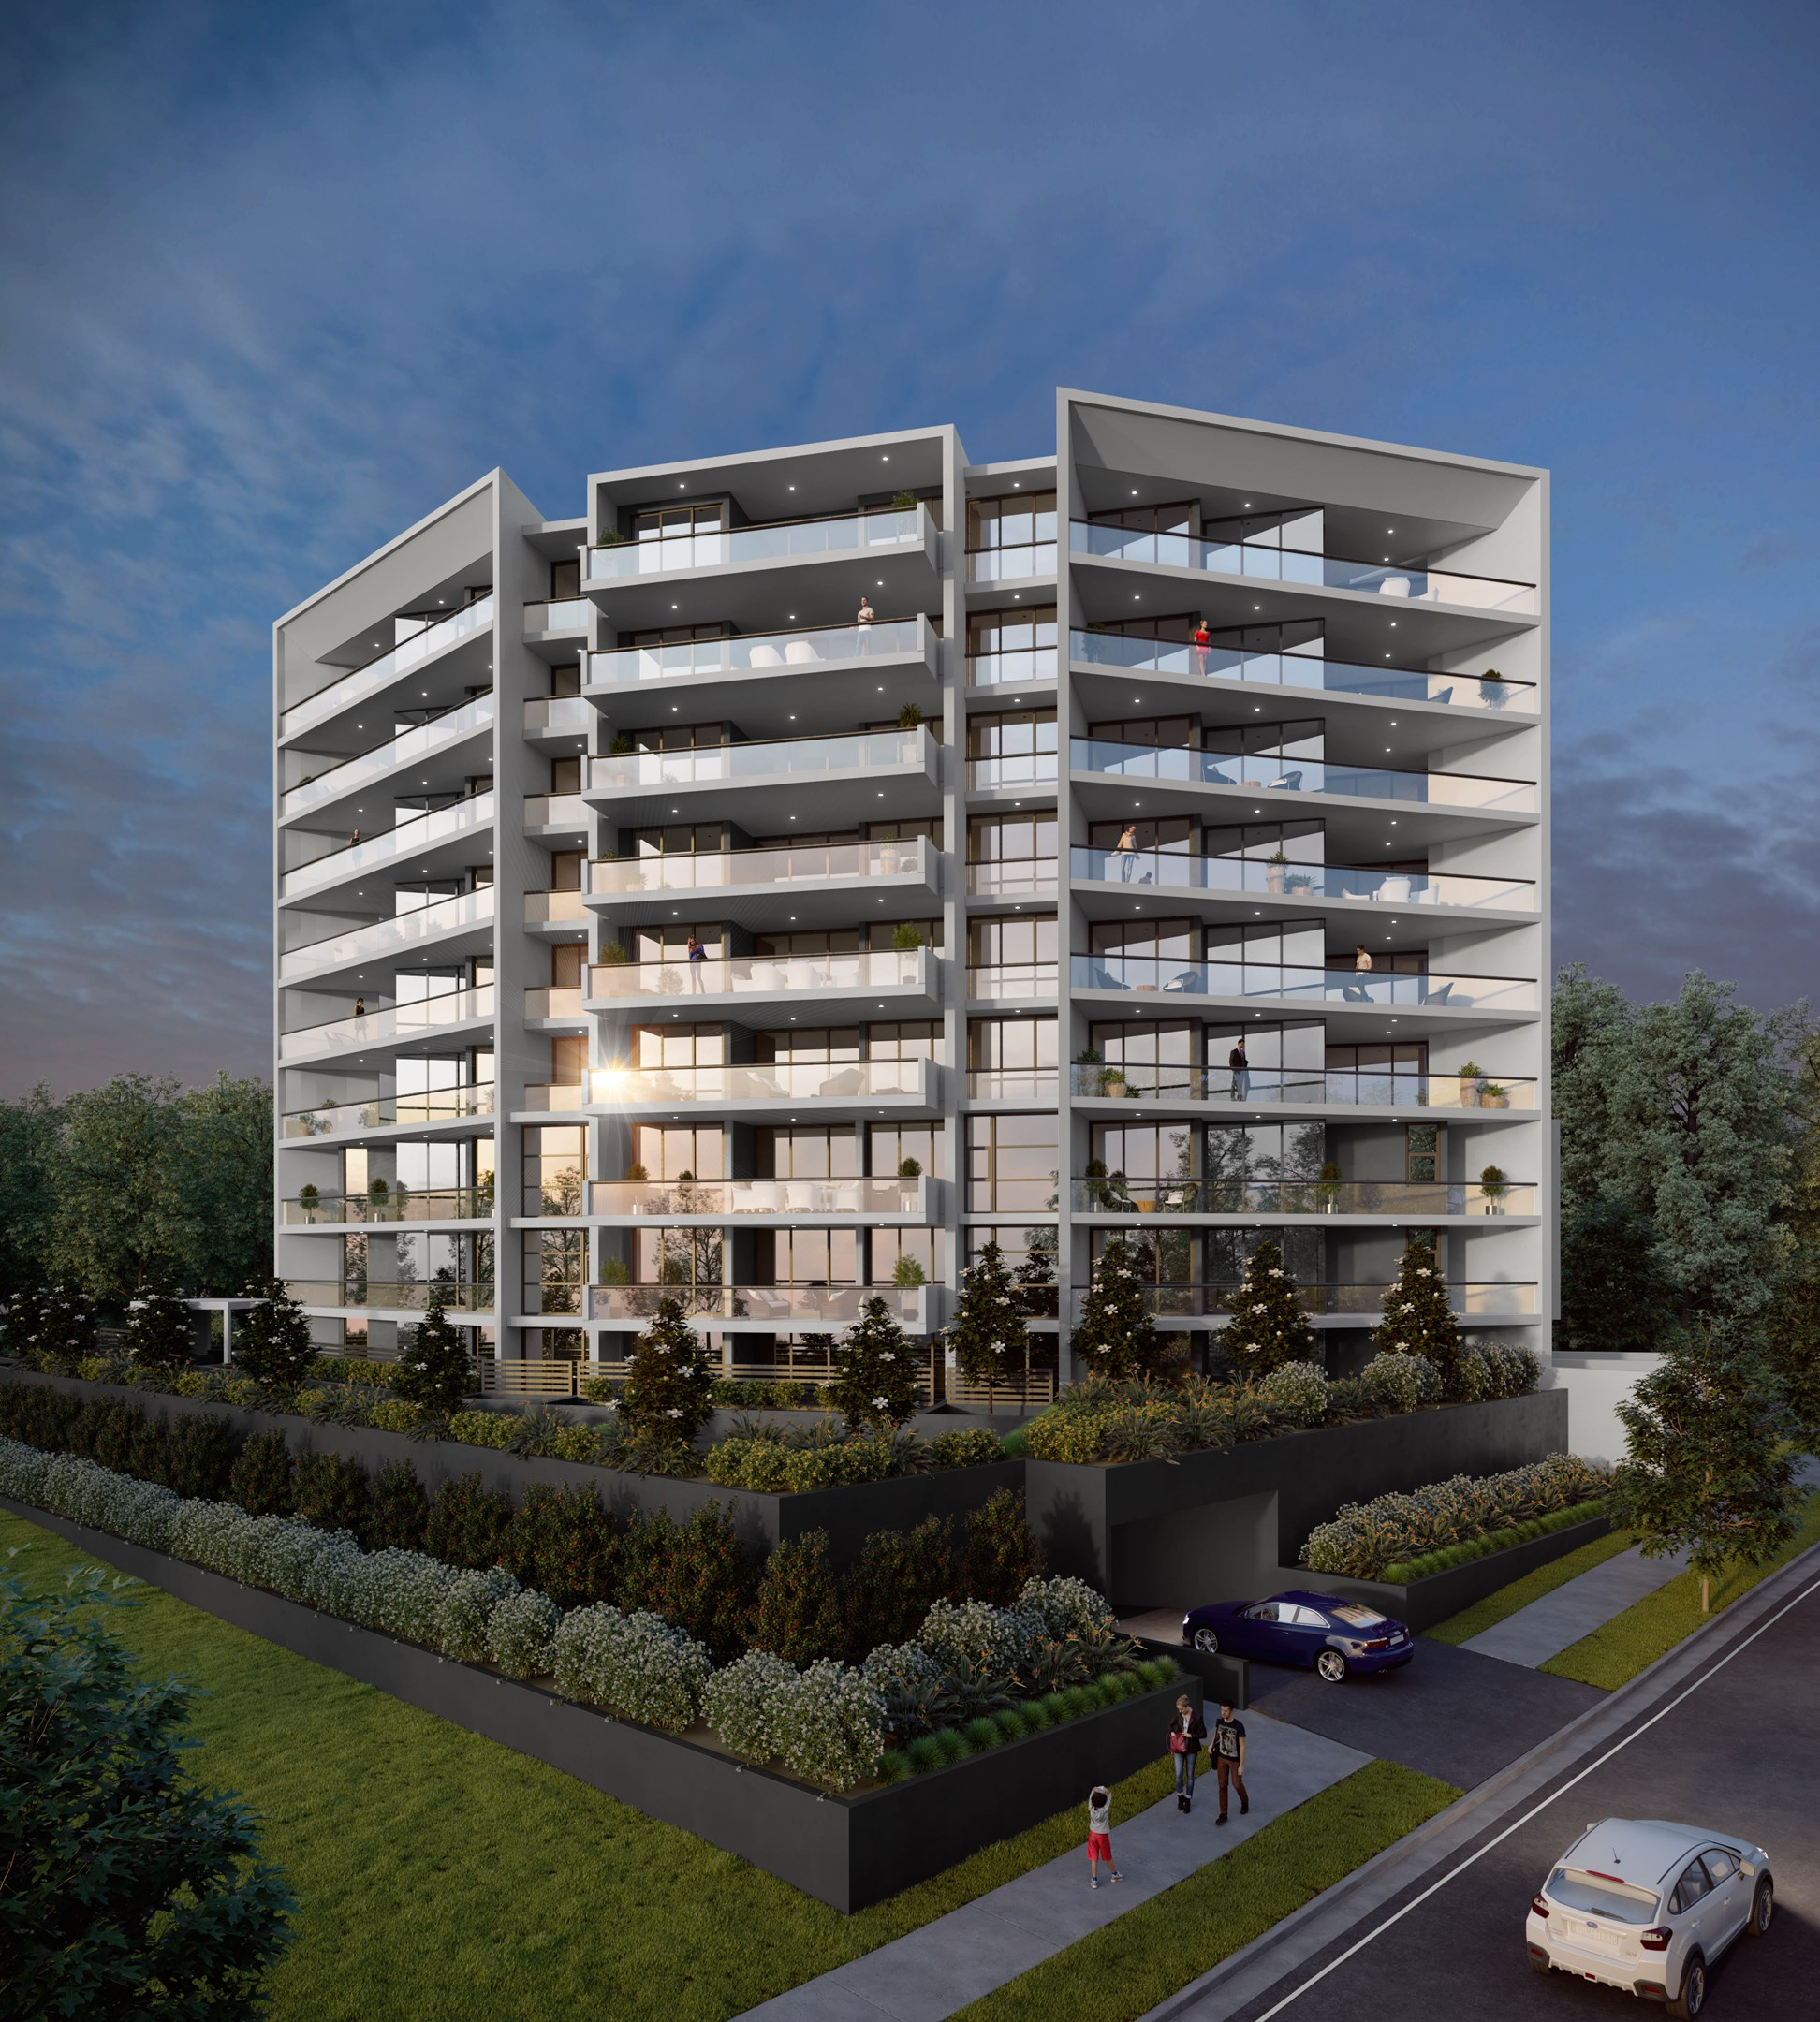 H Street Apartments: 103/21 Harbour Street, Wollongong NSW 2500